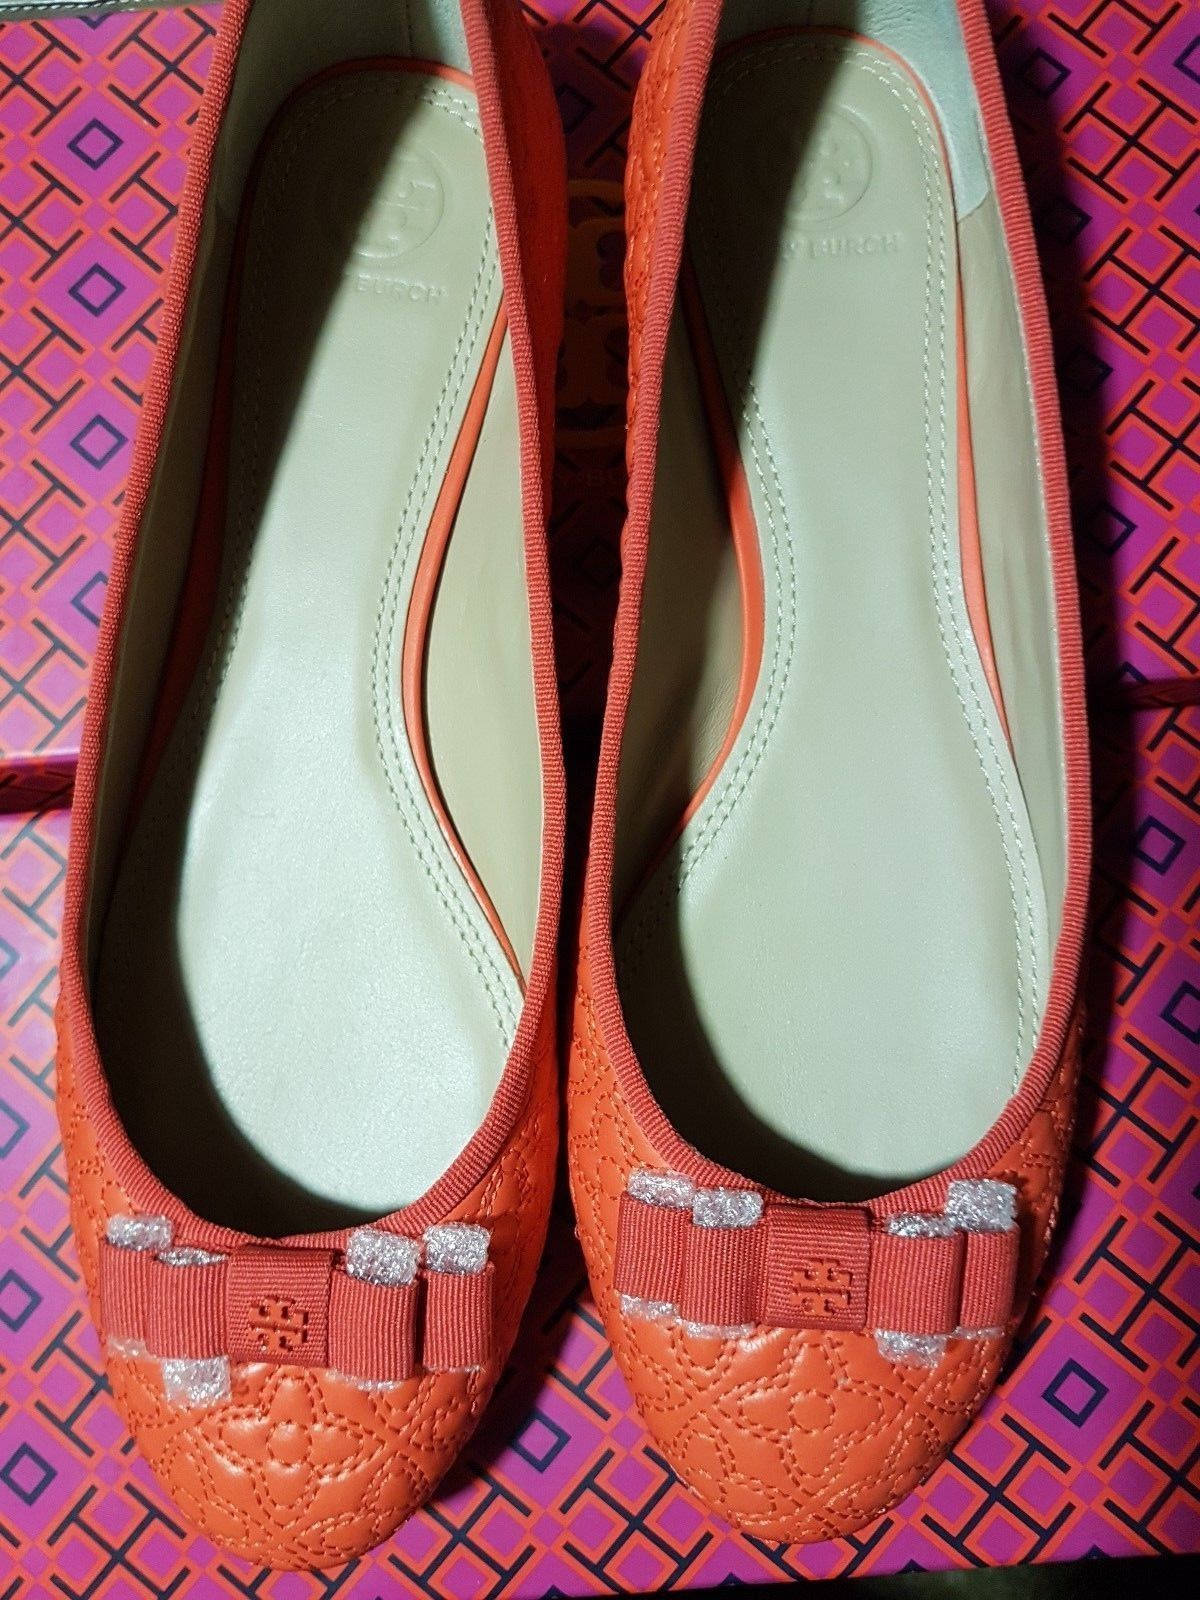 Tory Burch bryant quilted Leather Flats Shoes - poppy coral